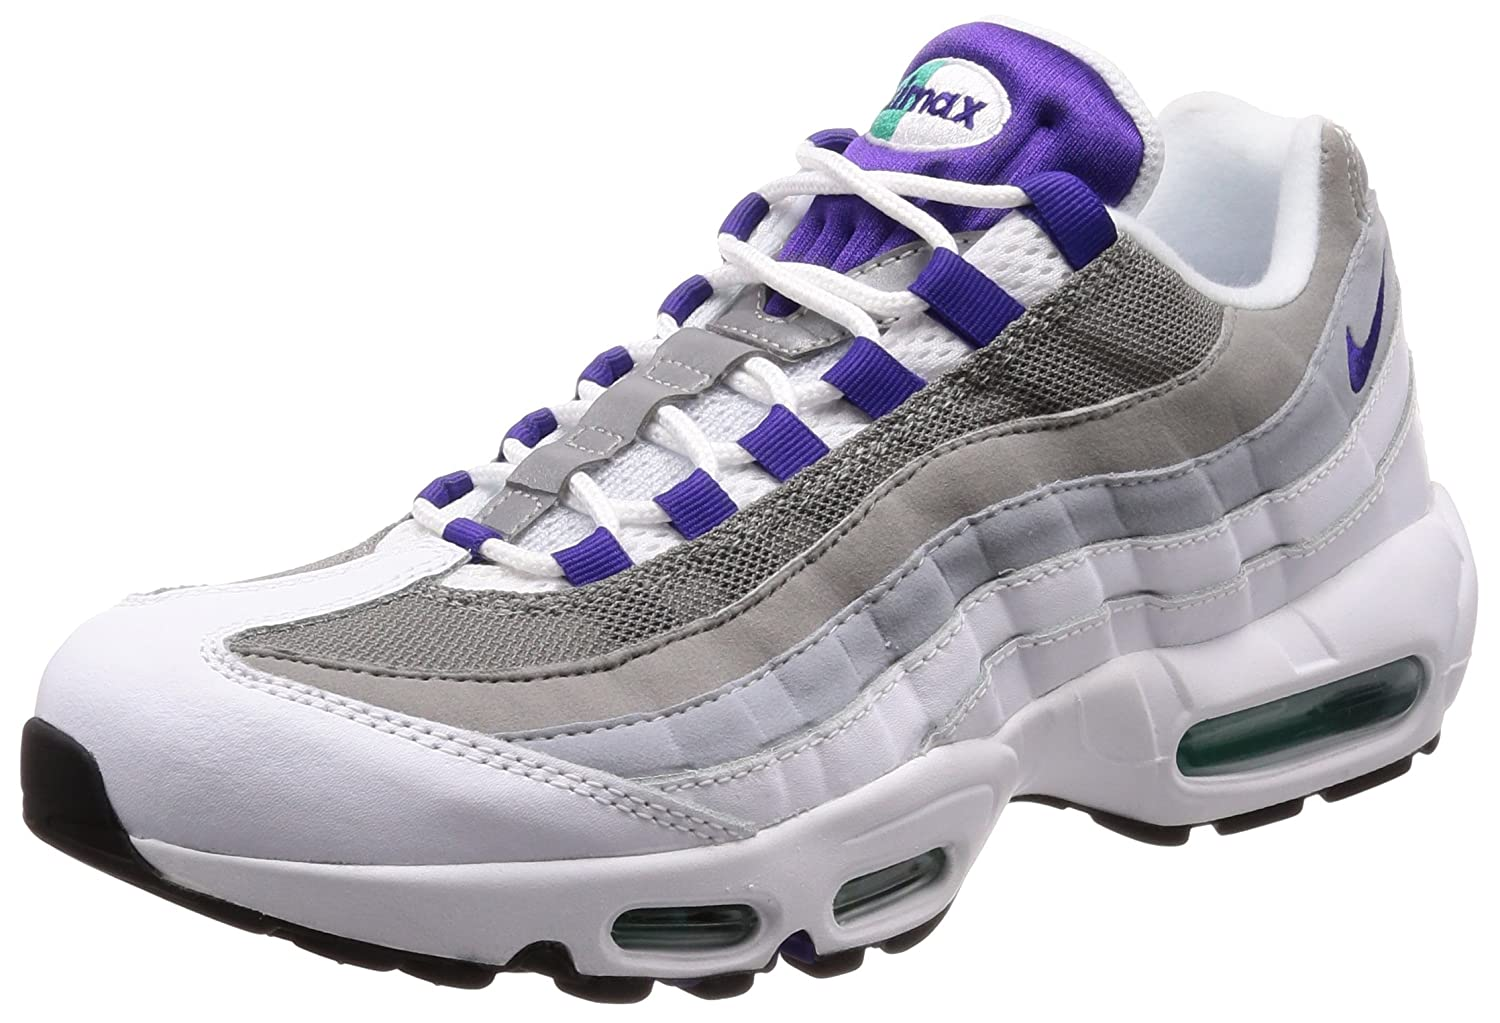 timeless design 26c8f 059d5 Amazon.com   Nike Women s WMNS Air Max 95 Trainers, Multicolour  (White Emerald Green Wolf Grey Court Purple 109), 4.5 UK 38 EU   Road  Running